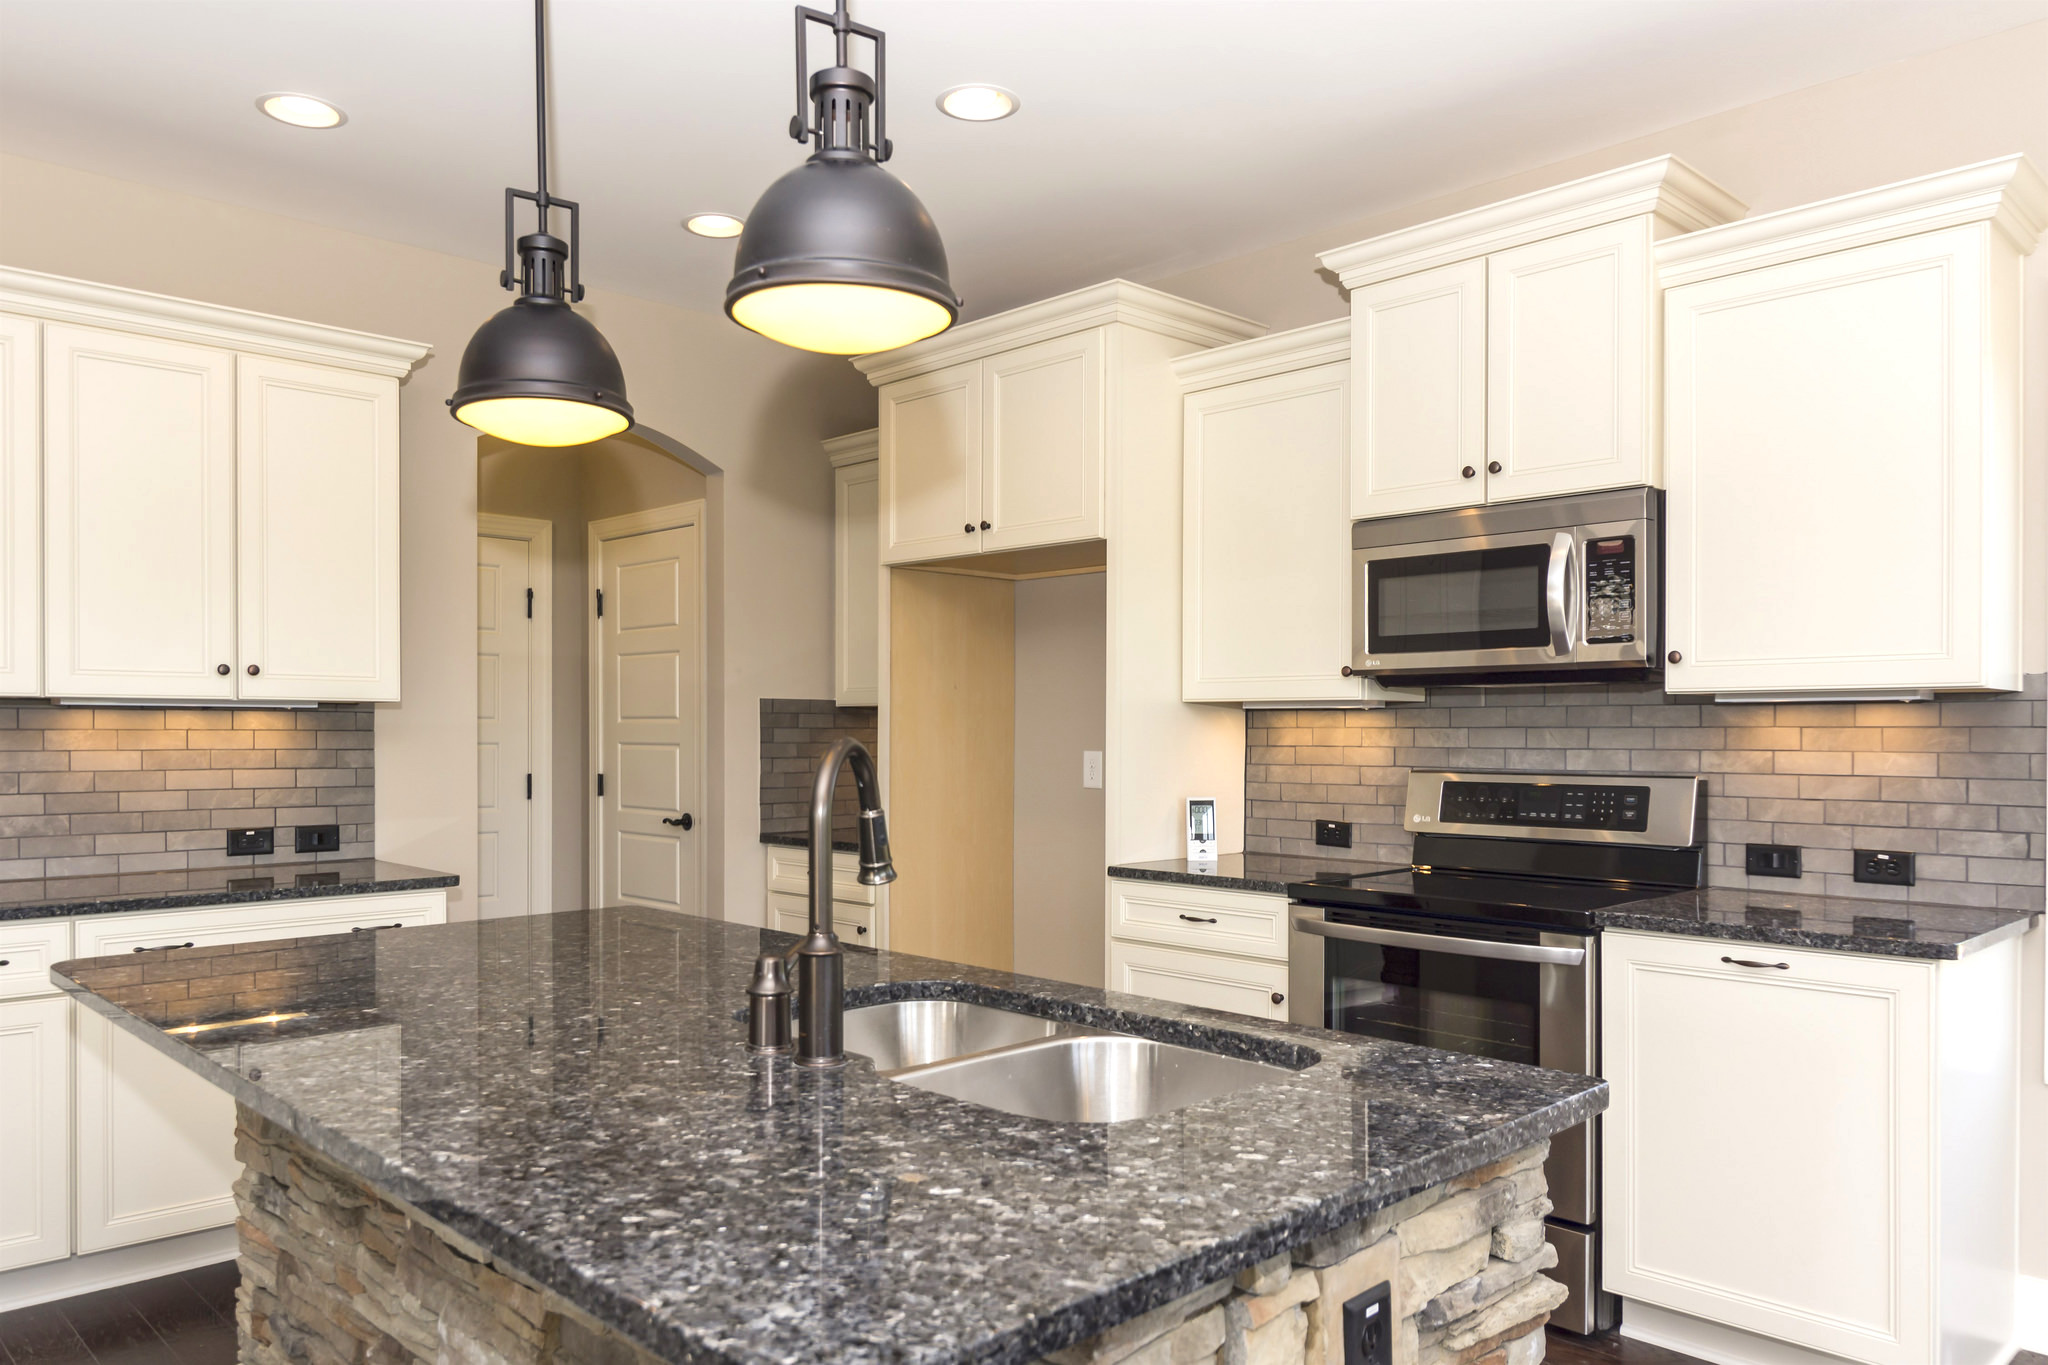 How To Choose Pulls Or Knobs For Your Kitchen Cabinet Hardware Nebs